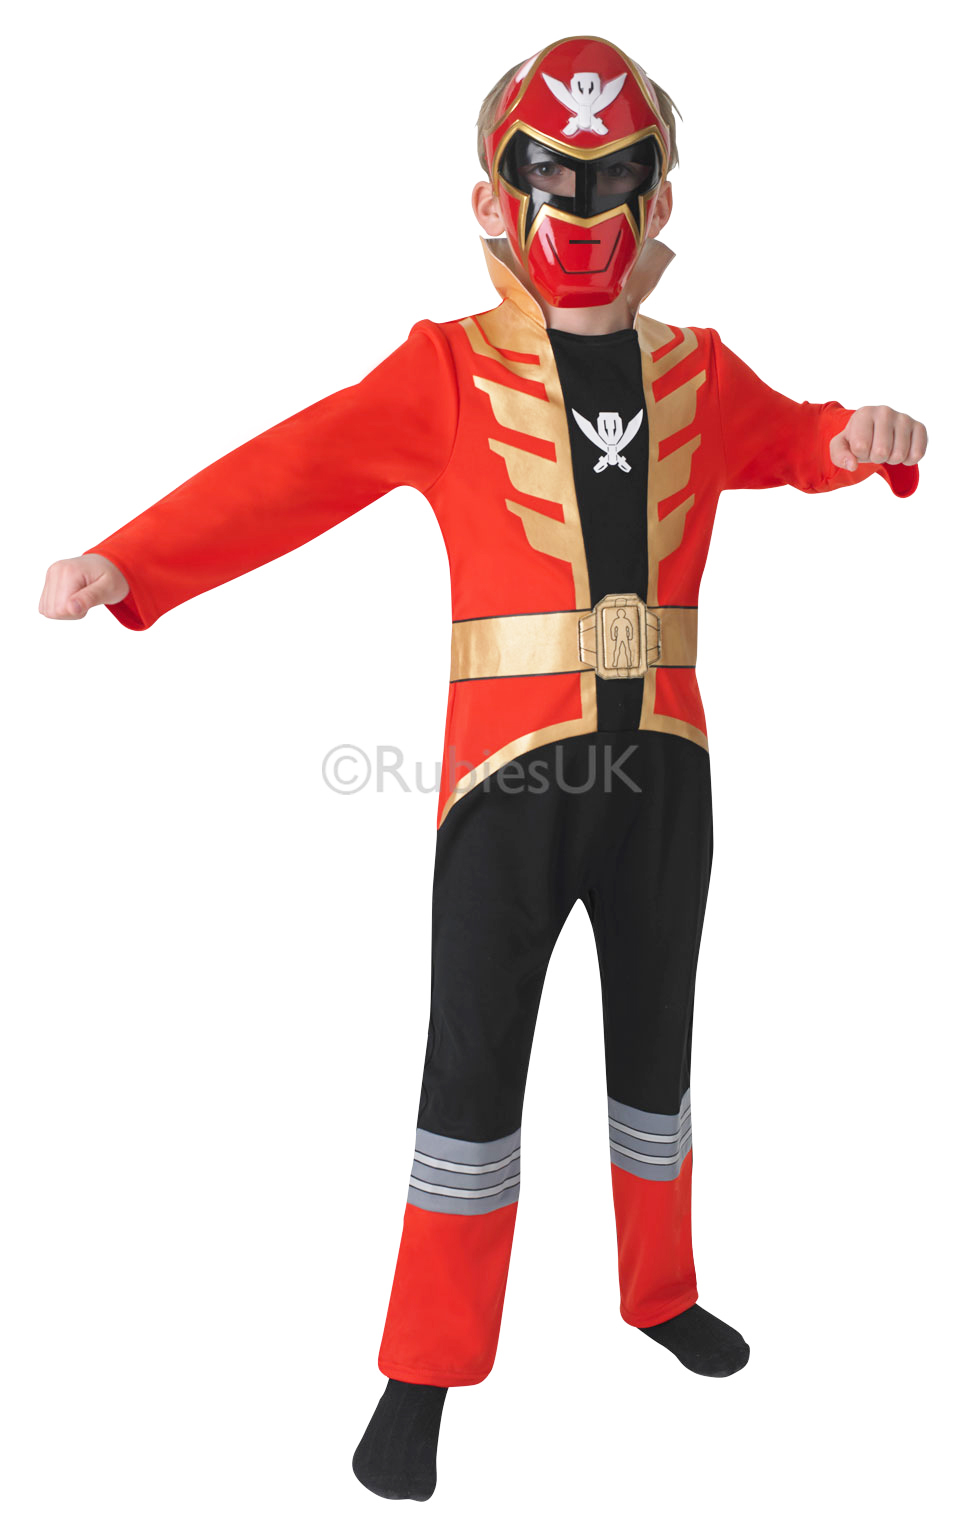 Red Super Megaforce Power Ranger Costume | Power Ranger Costumes | Mega Fancy Dress